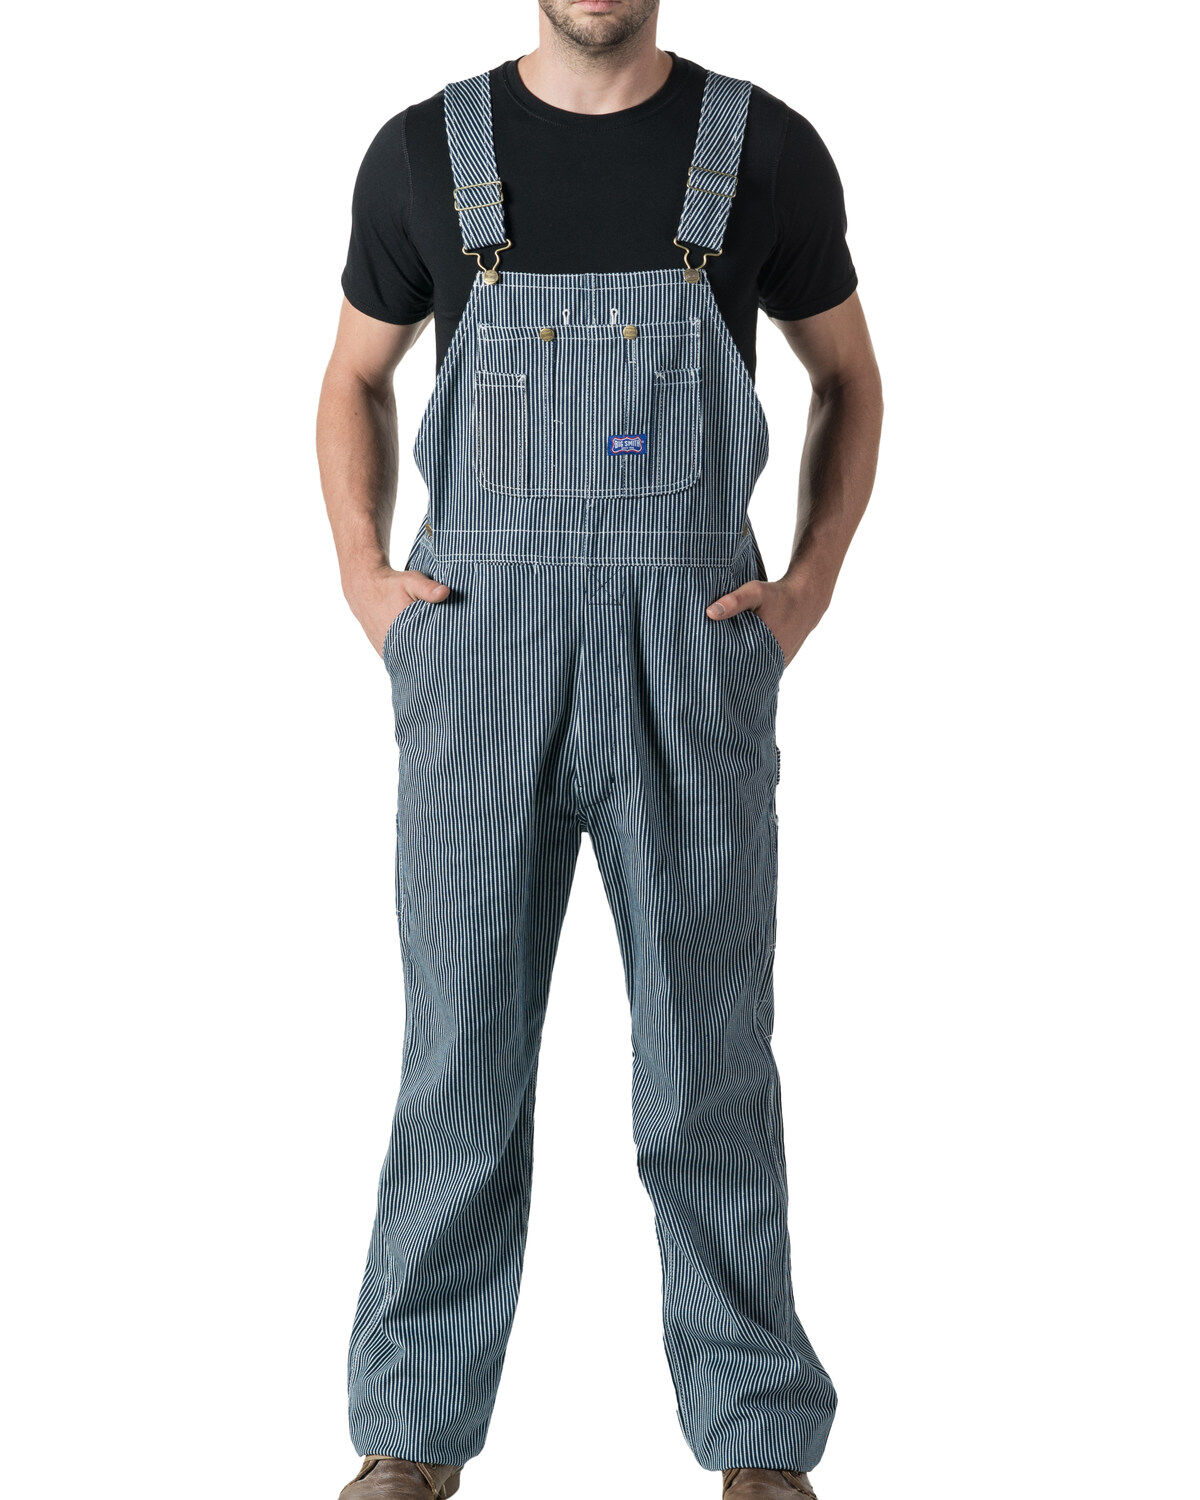 Walls Mens Frost Blizzard Pruf Insulated Bib Overall